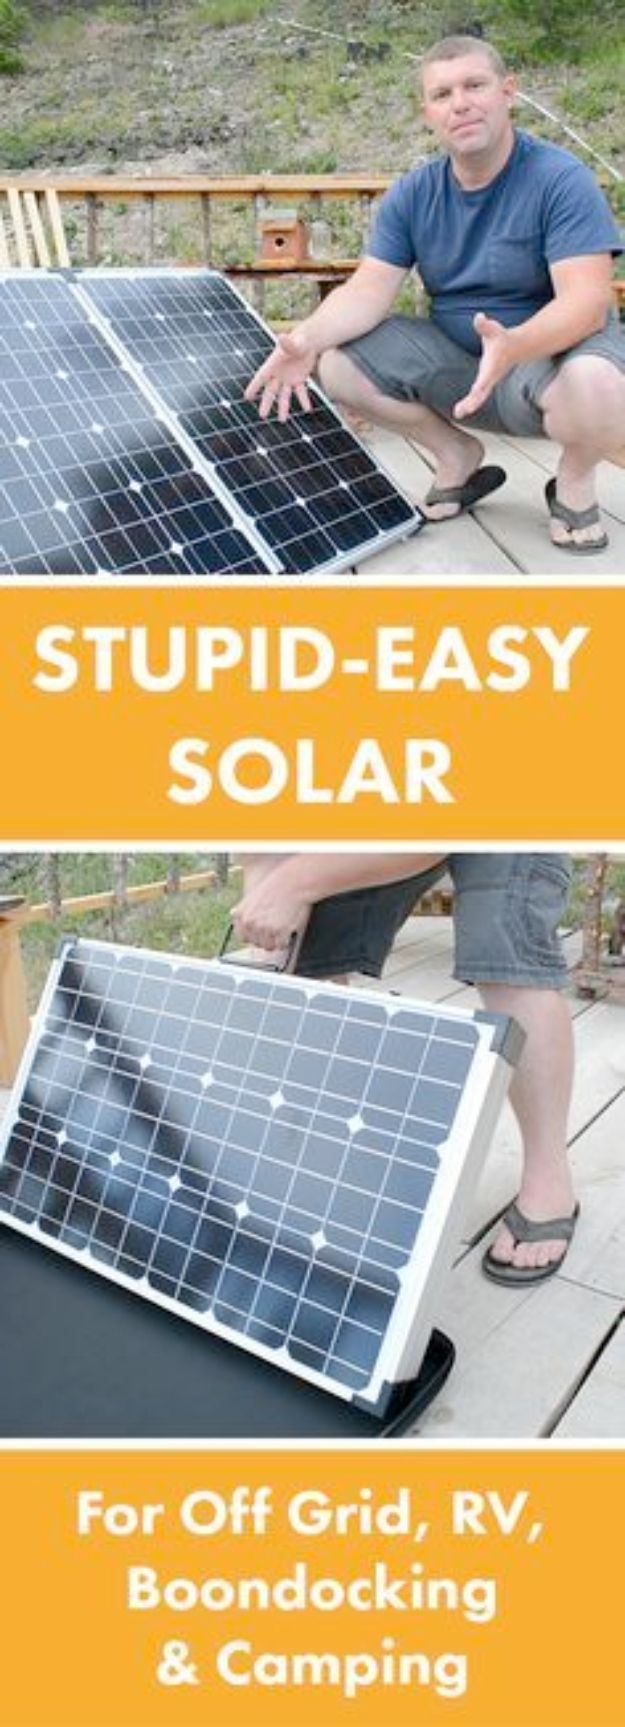 62 Best Solar Images On Pinterest Alternative Energy Renewable Electrical Circuit Breaker Panel Diagram Http Knowledgepublications 35 Awesome Powered Diy Ideas